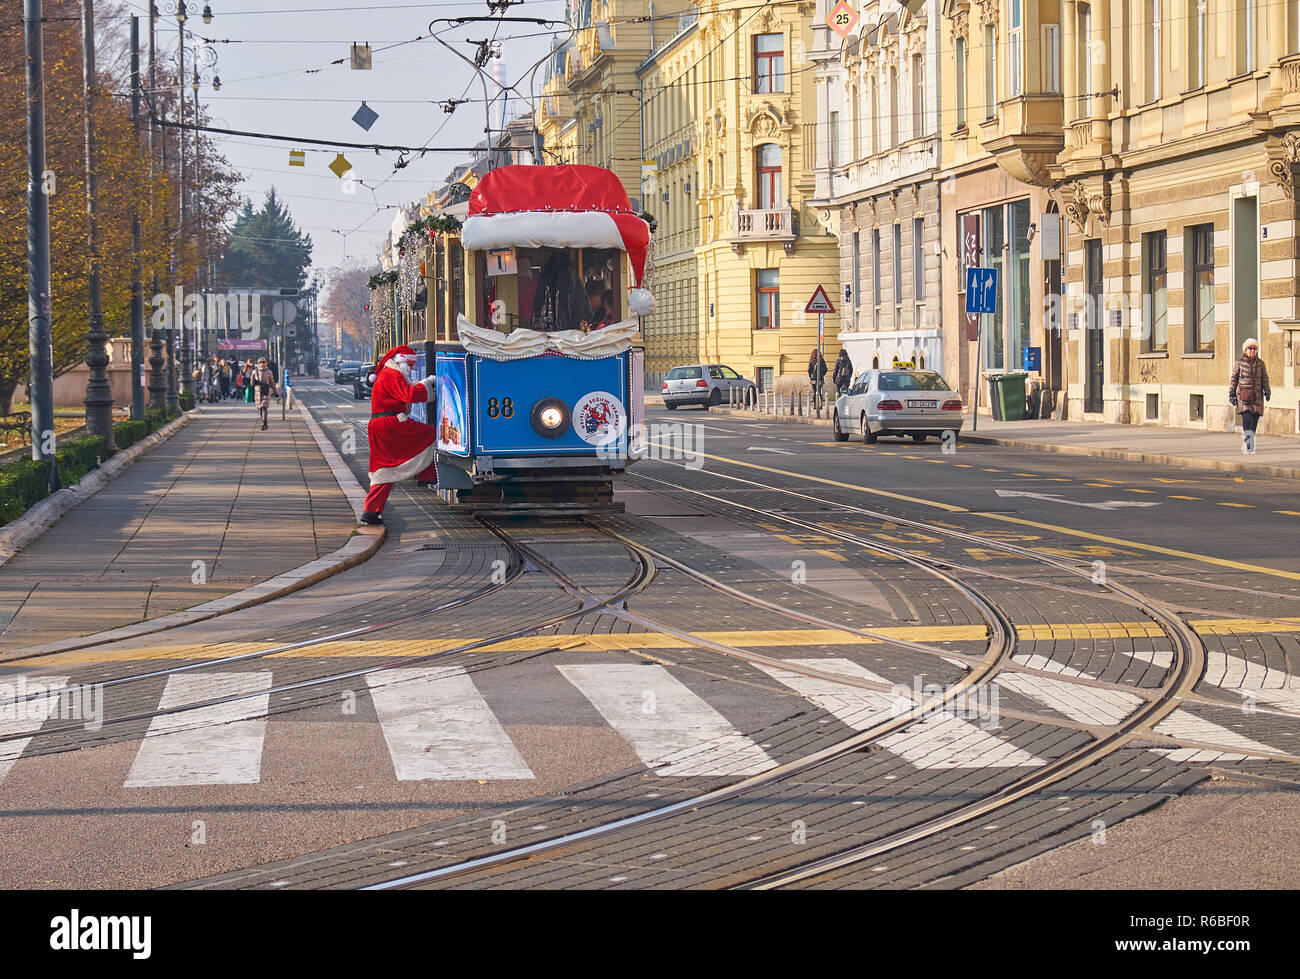 Santa boarding Santa Claus' tram, as part of the Advent Market celebration in Zagreb, going through the streets of the capital during Christmas season Stock Photo